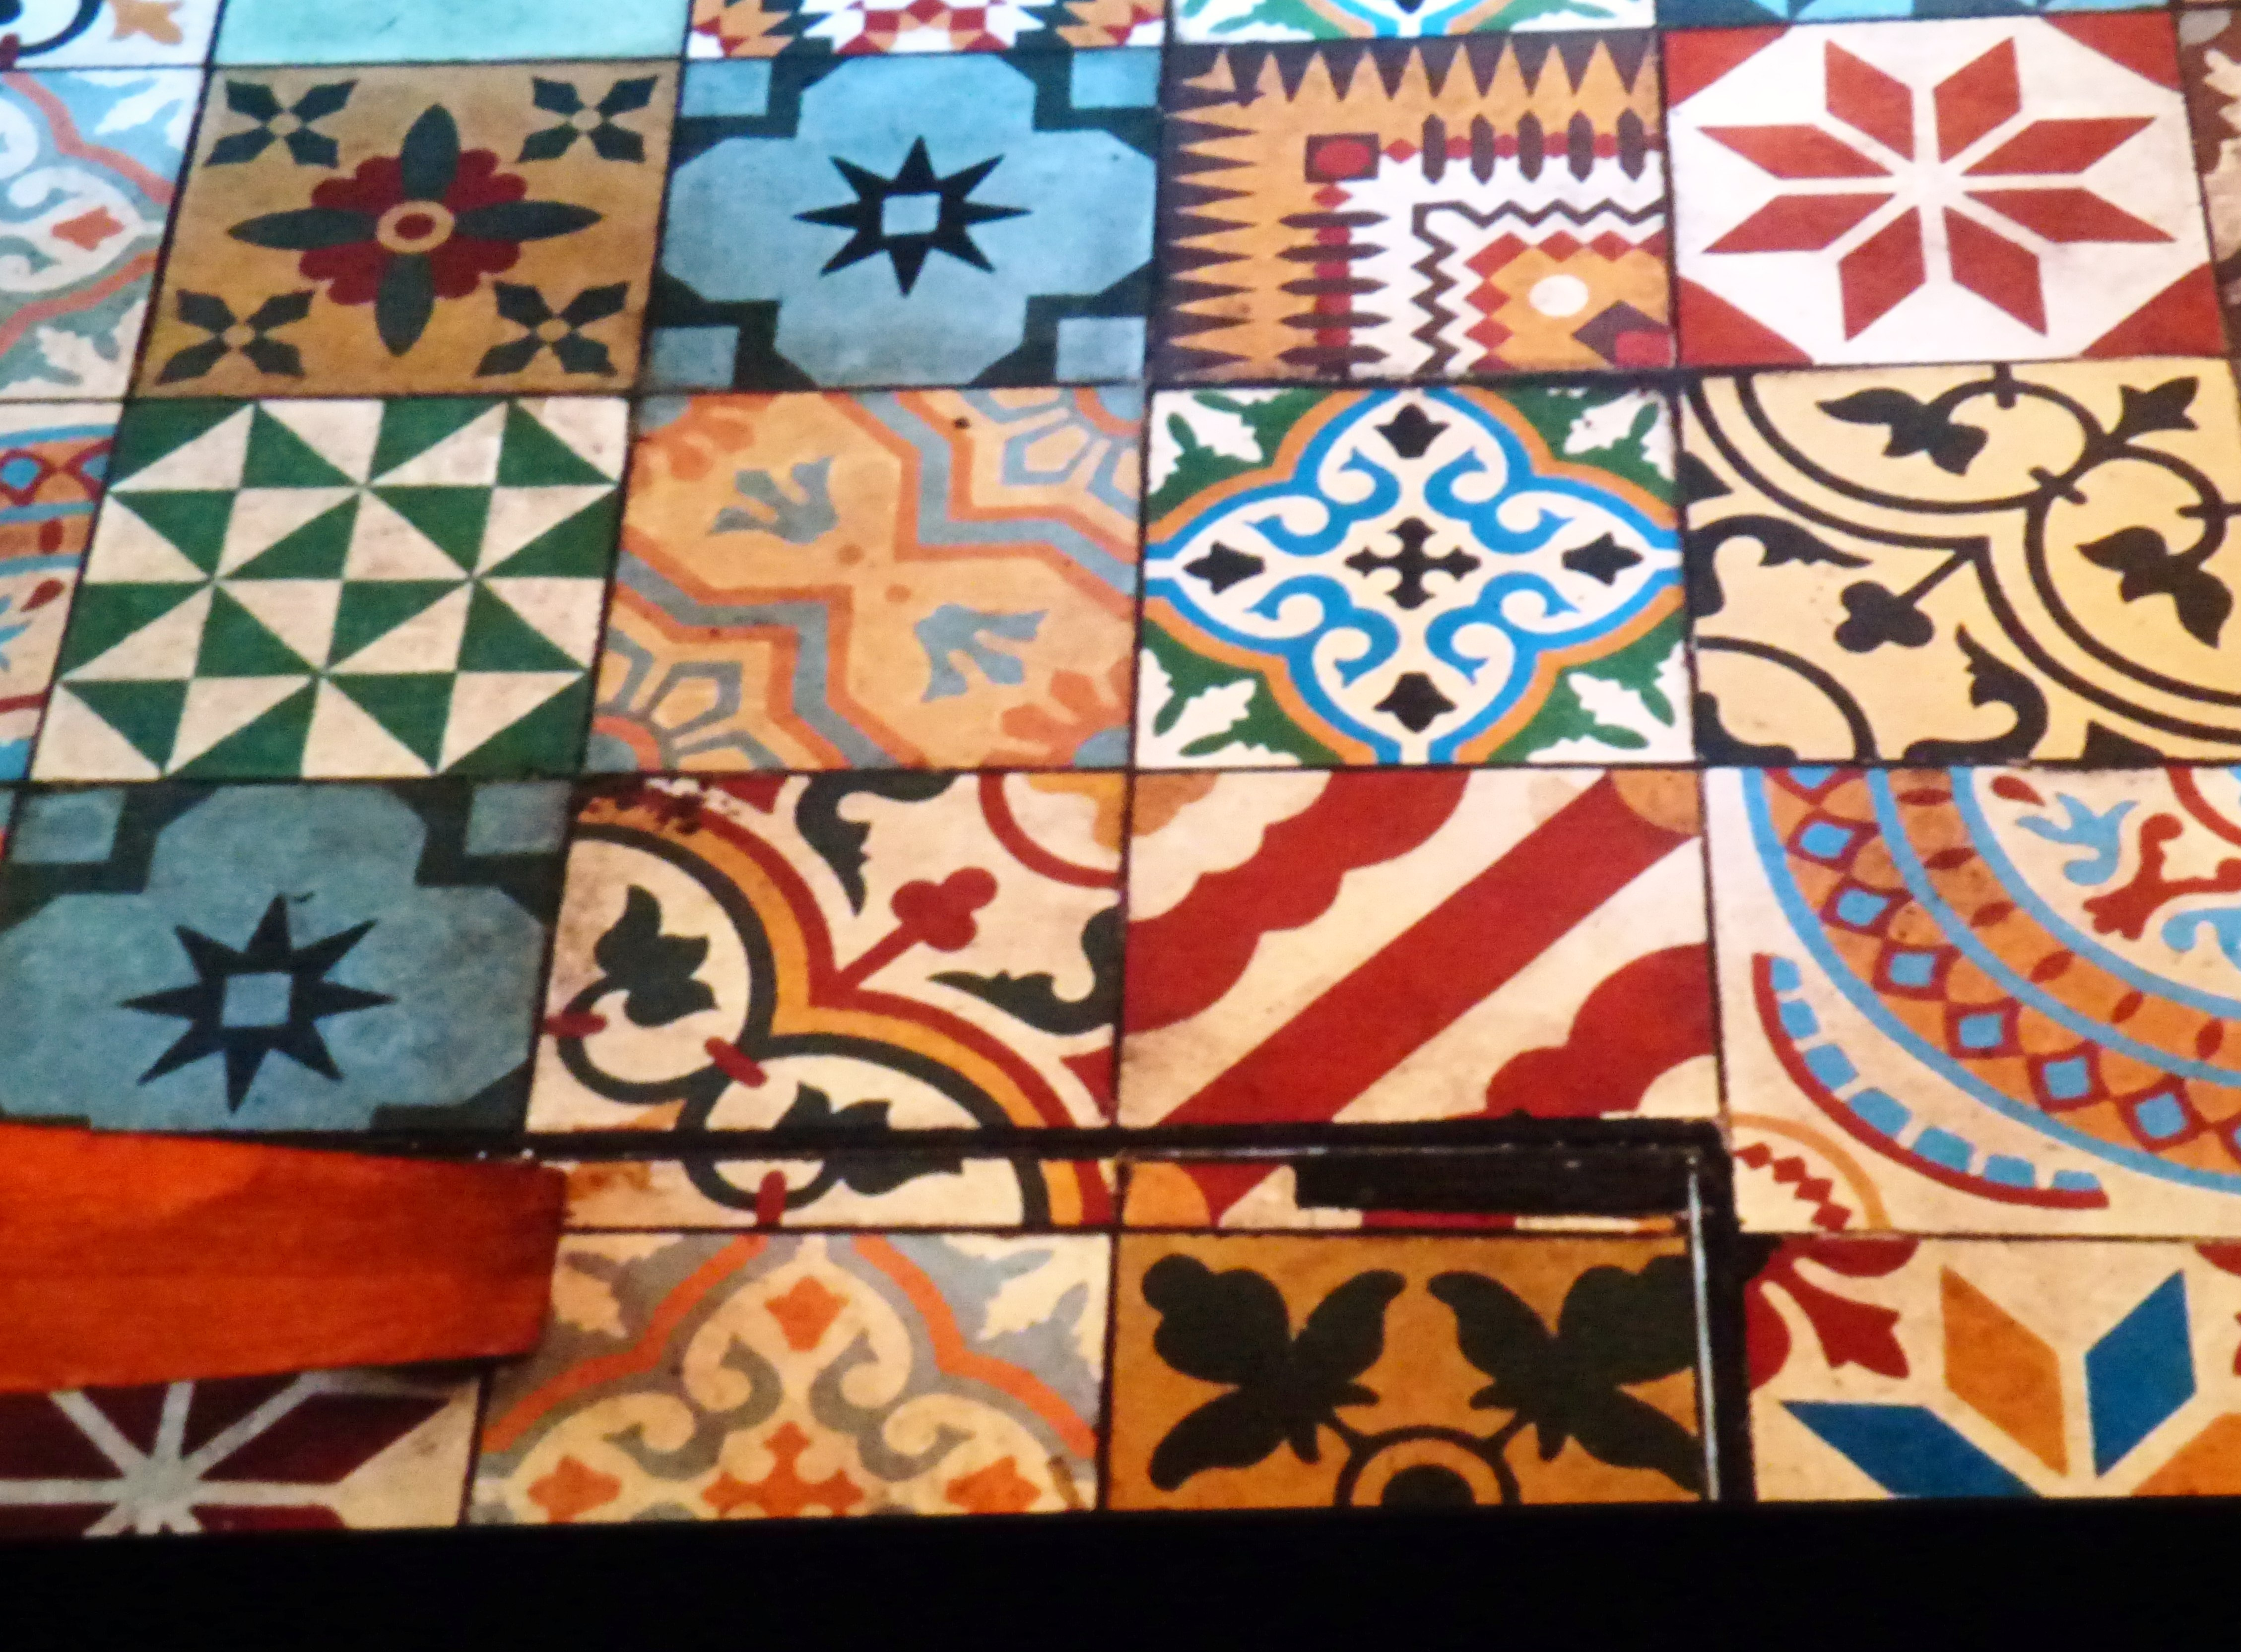 inspiration slide showing tiled floor at Kaffe Fassett Lecture, Capstone Theatre, Dec 2016